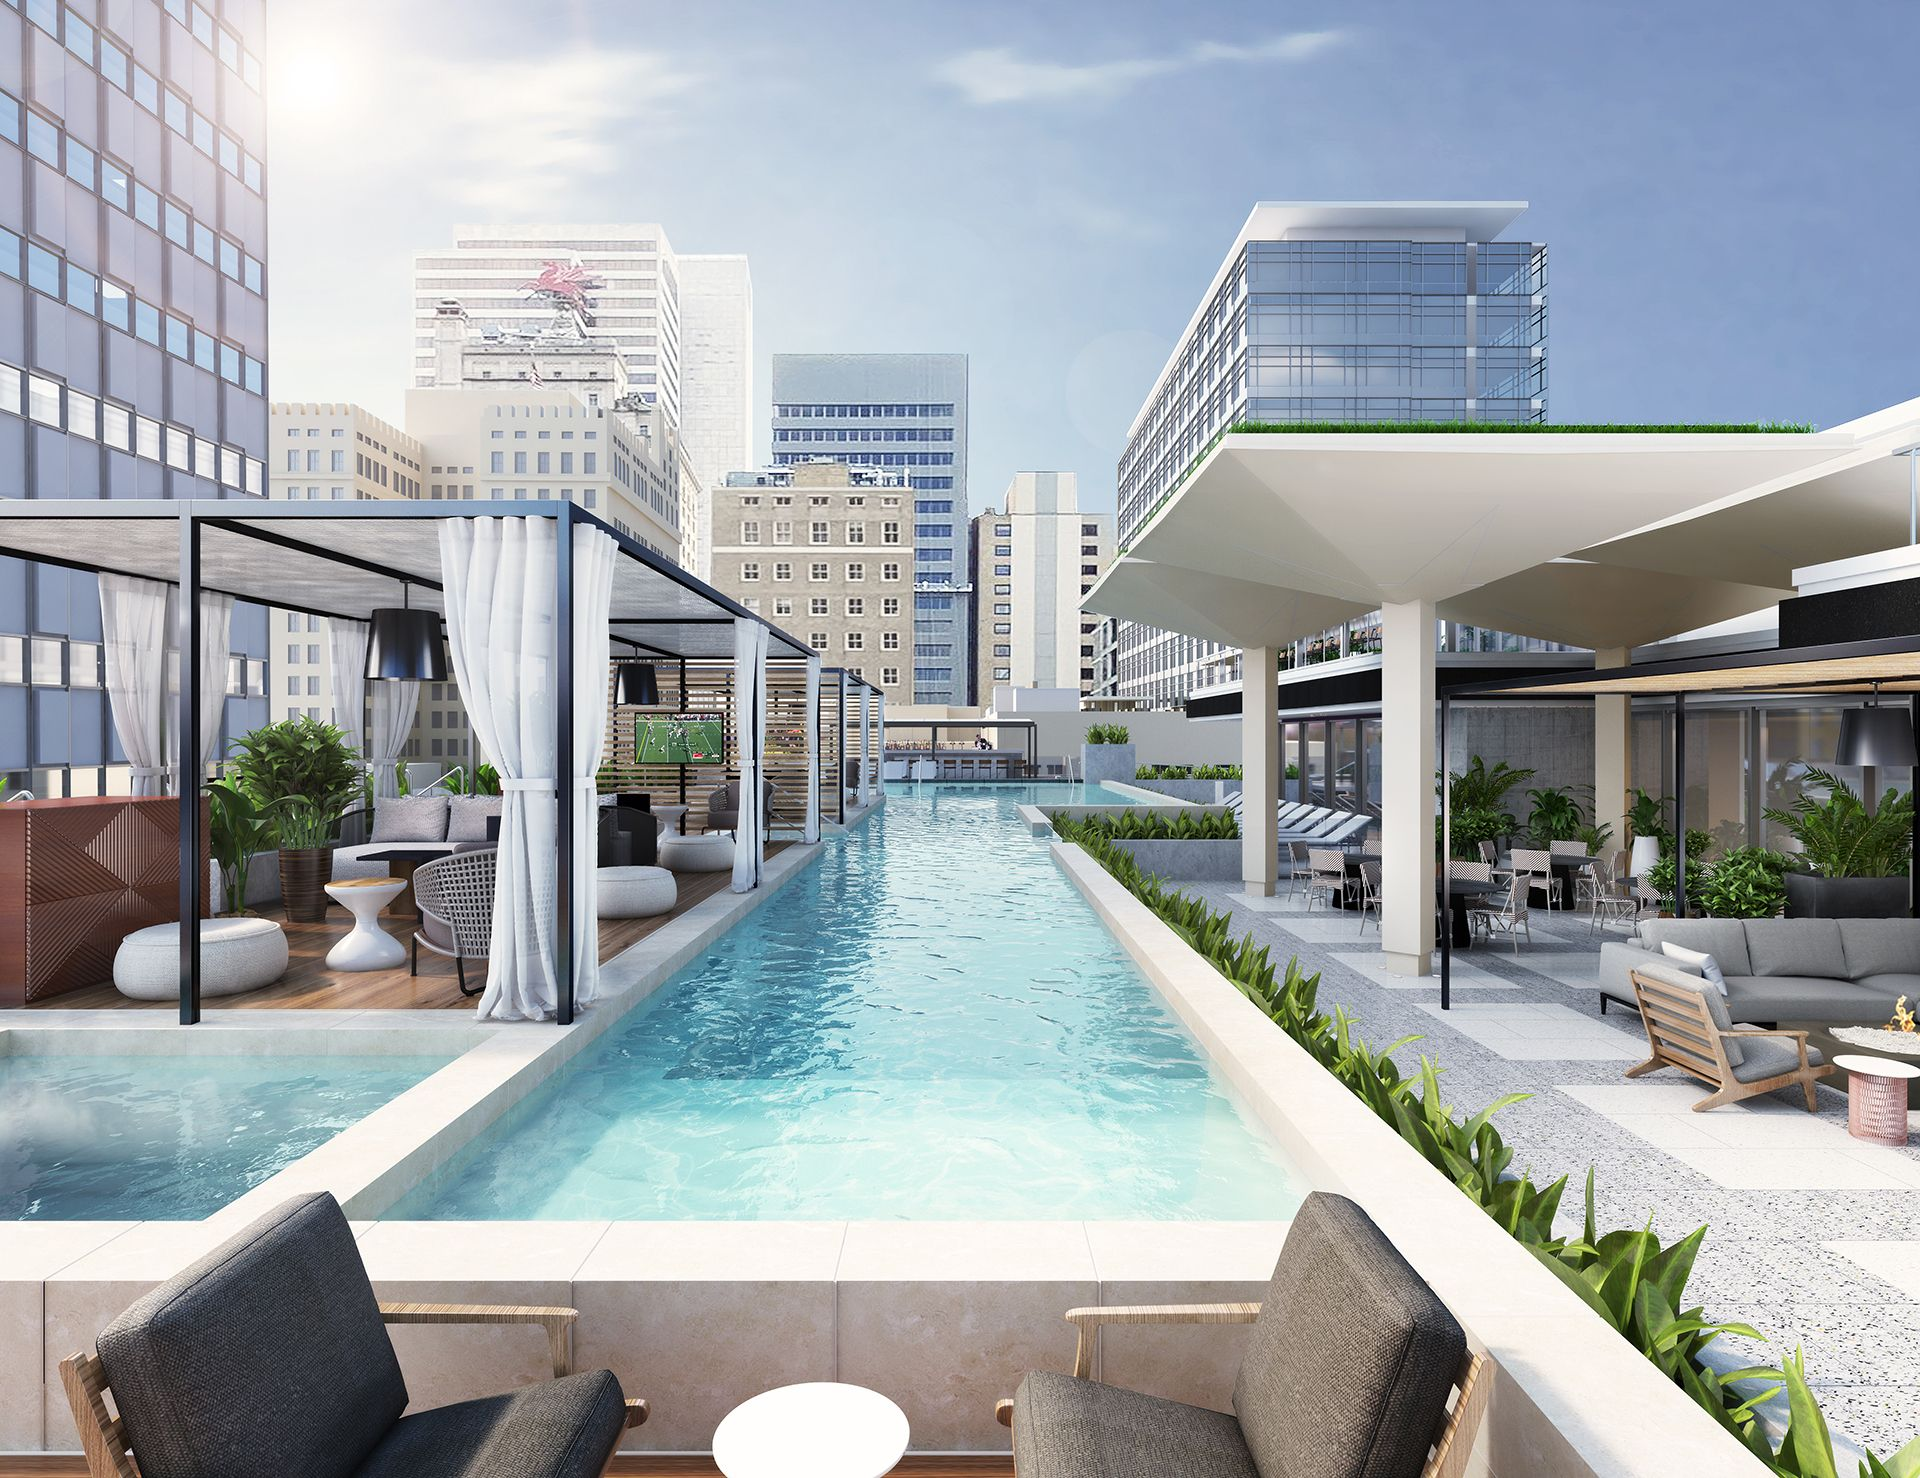 Rooftop pool with view of downtown skyline